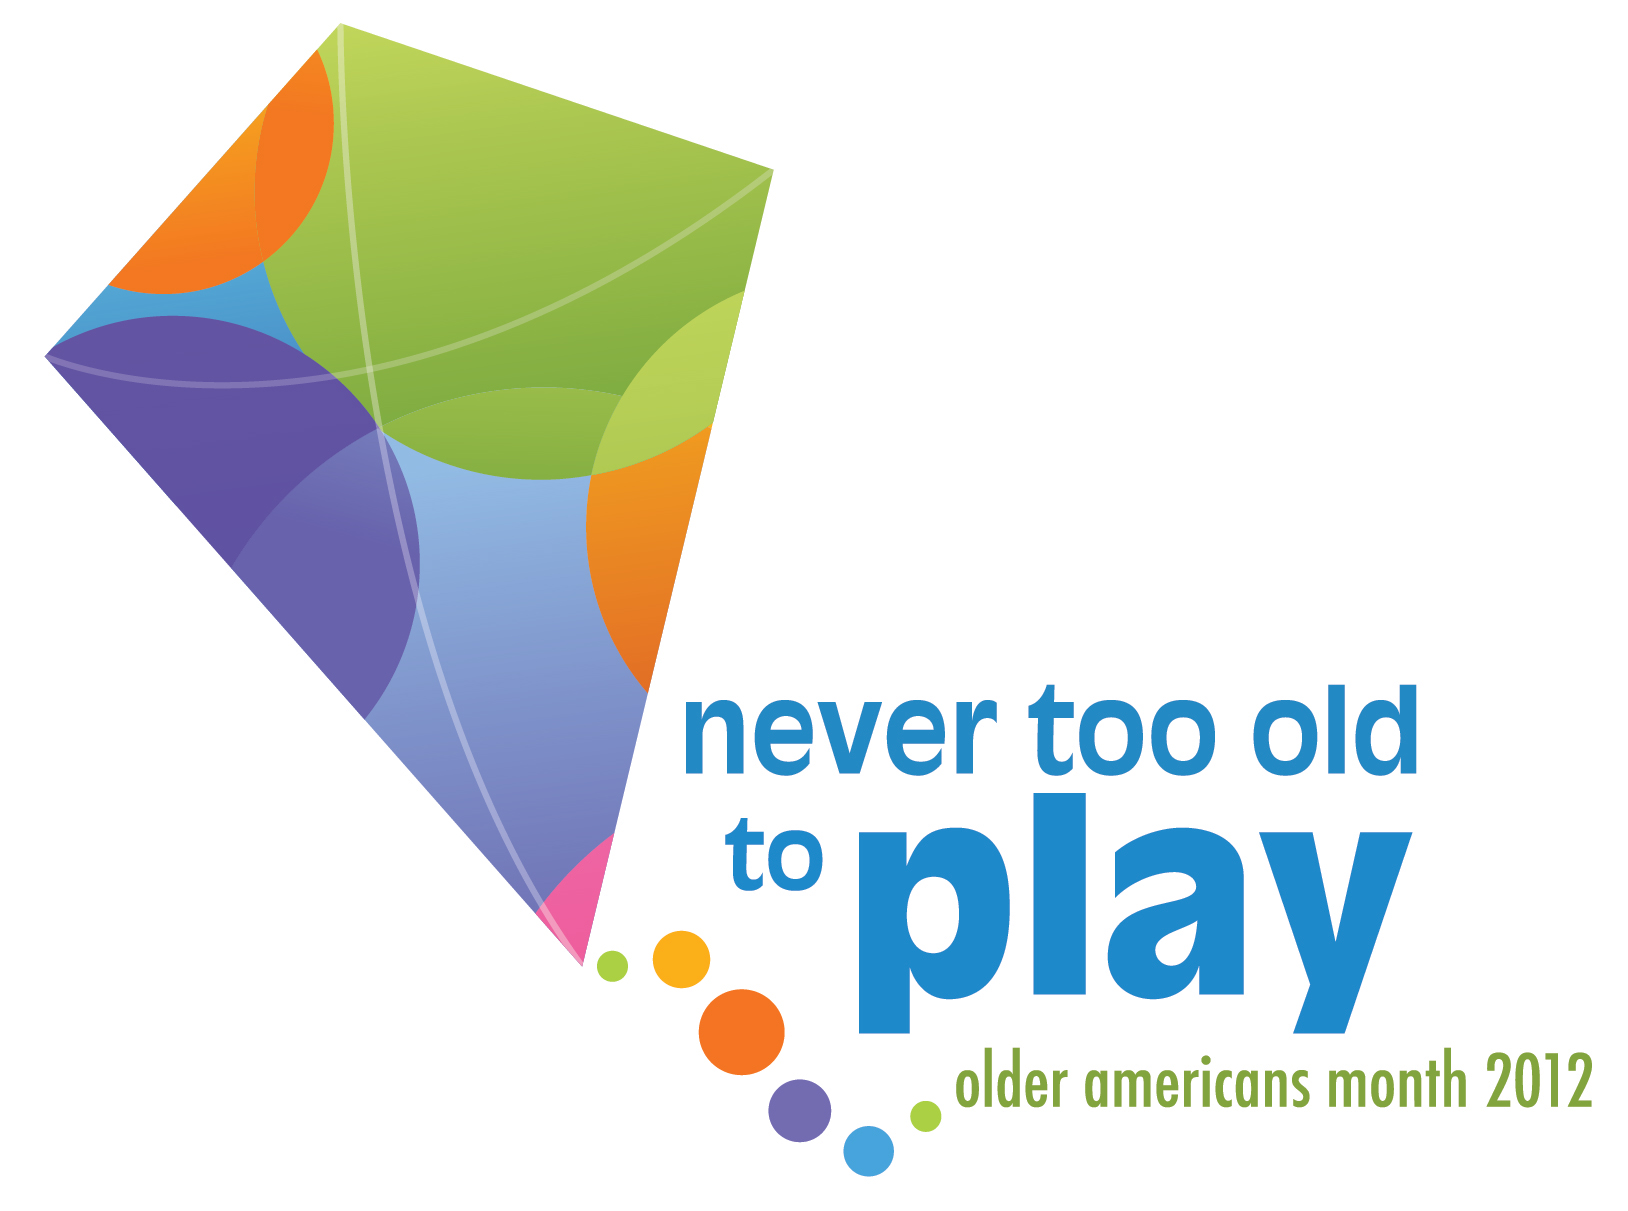 Never too old to play